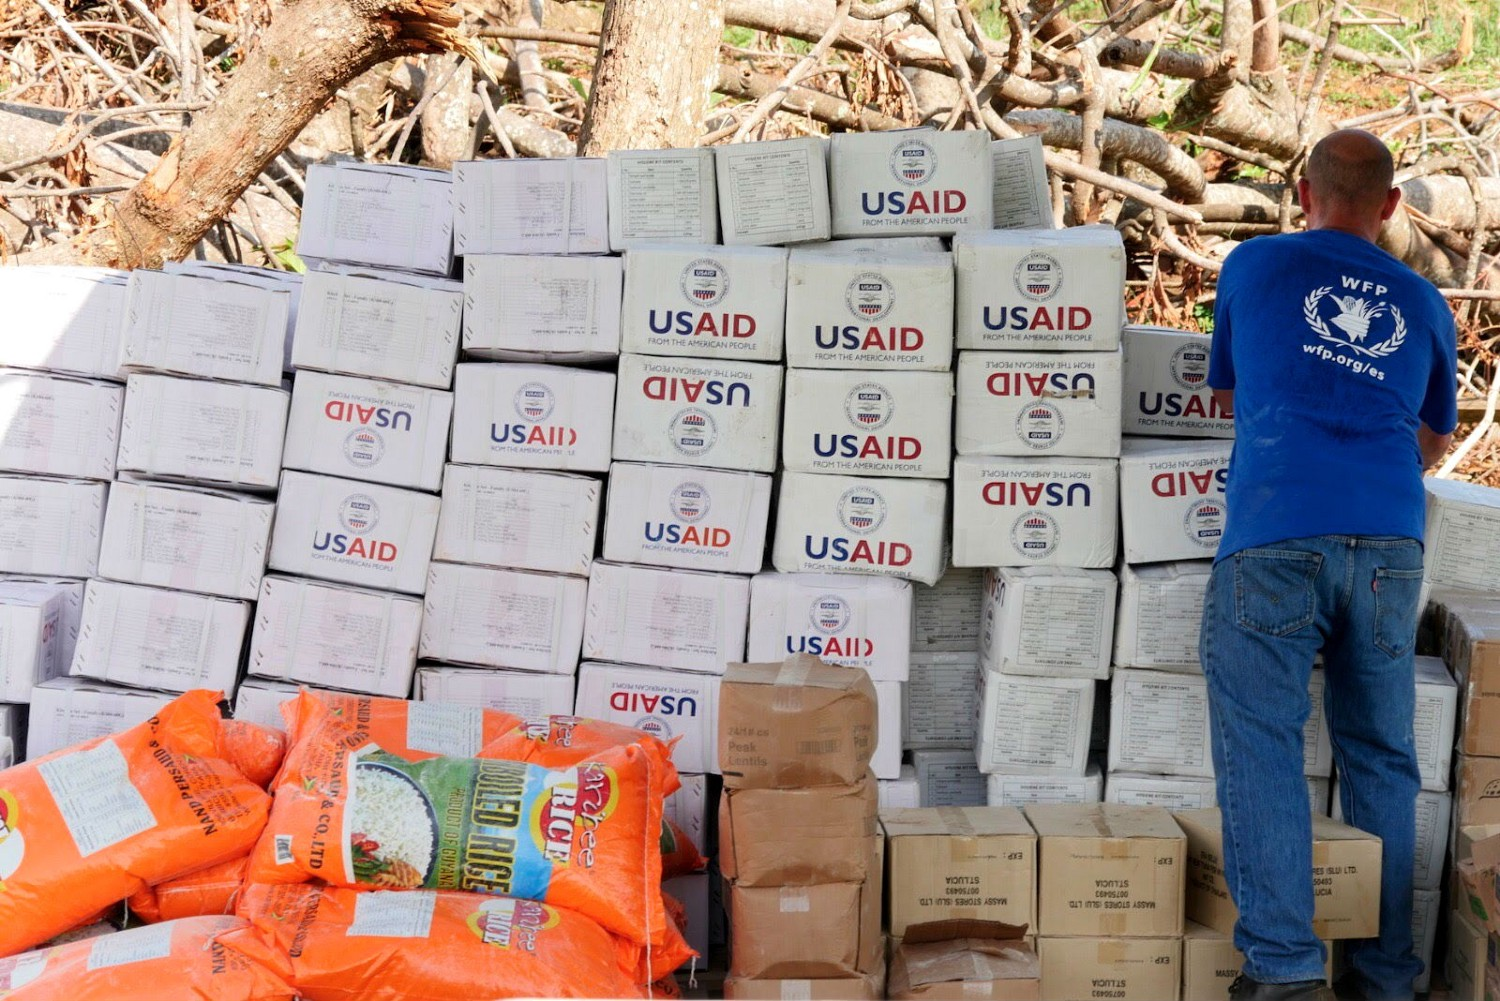 The UN World Food Program (WFP) prepares to distribute USAID-provided humanitarian assistance. / Francesca Ciardi, WFP